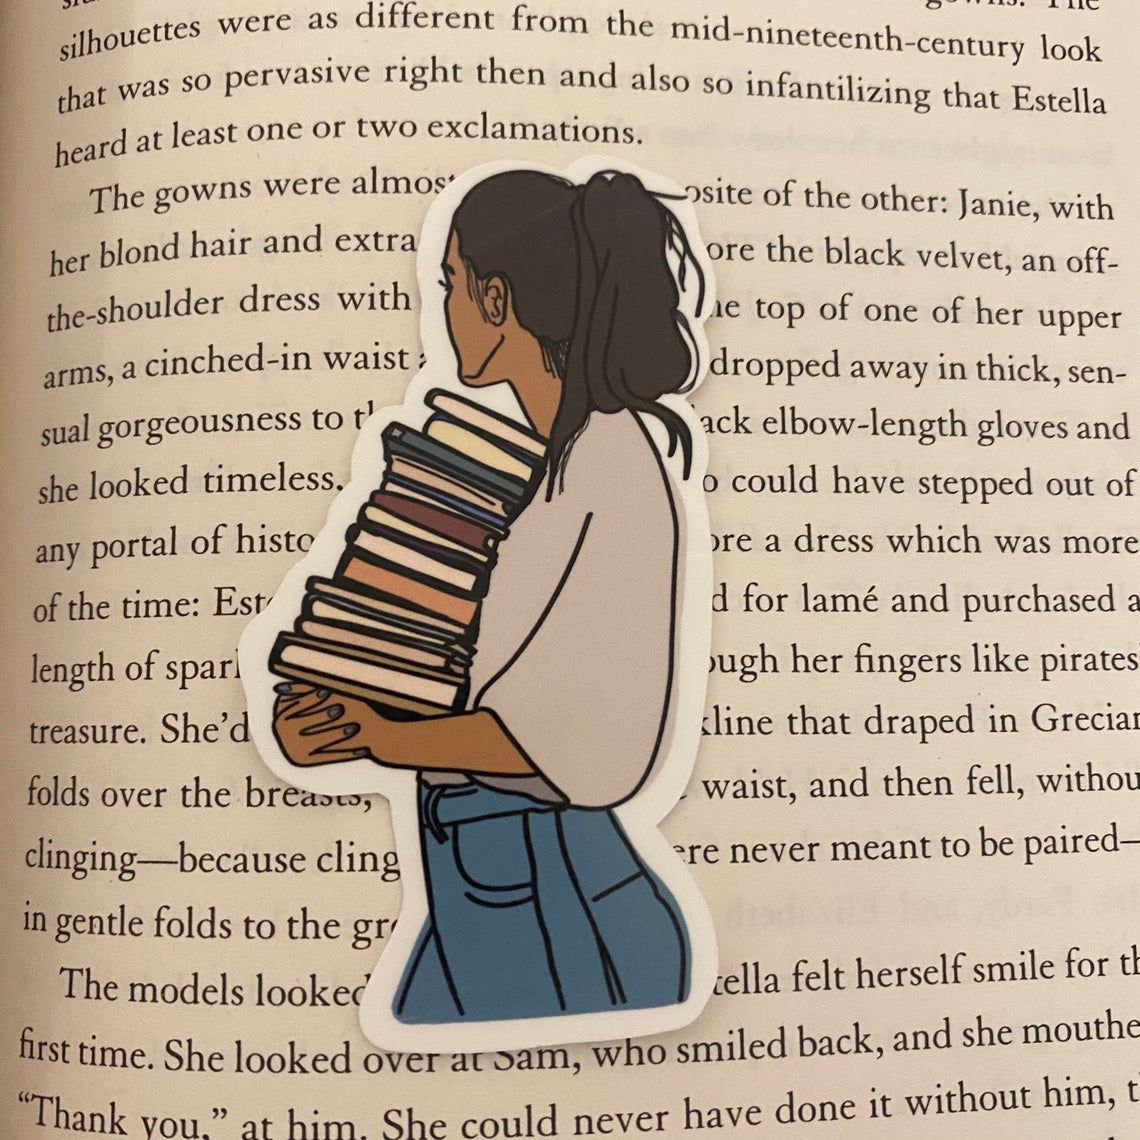 sticker depicting a person looking away over their shoulder holding a stack of books